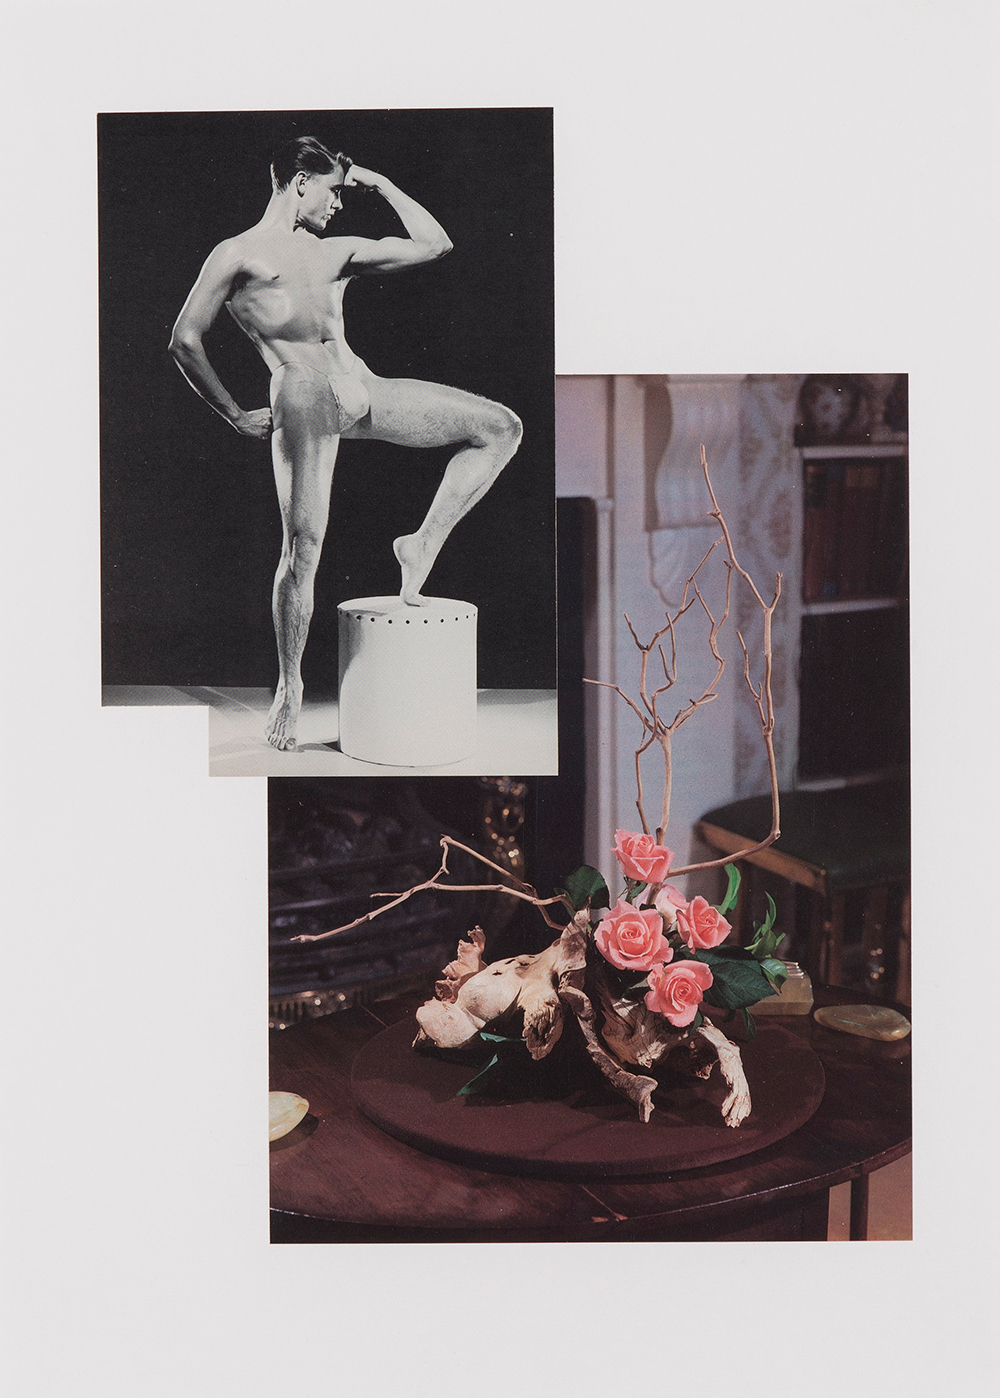 Simon Moretti   Untitled (Composition with Roses)  2012 Collage 58.4 x 46.2 cm Unique